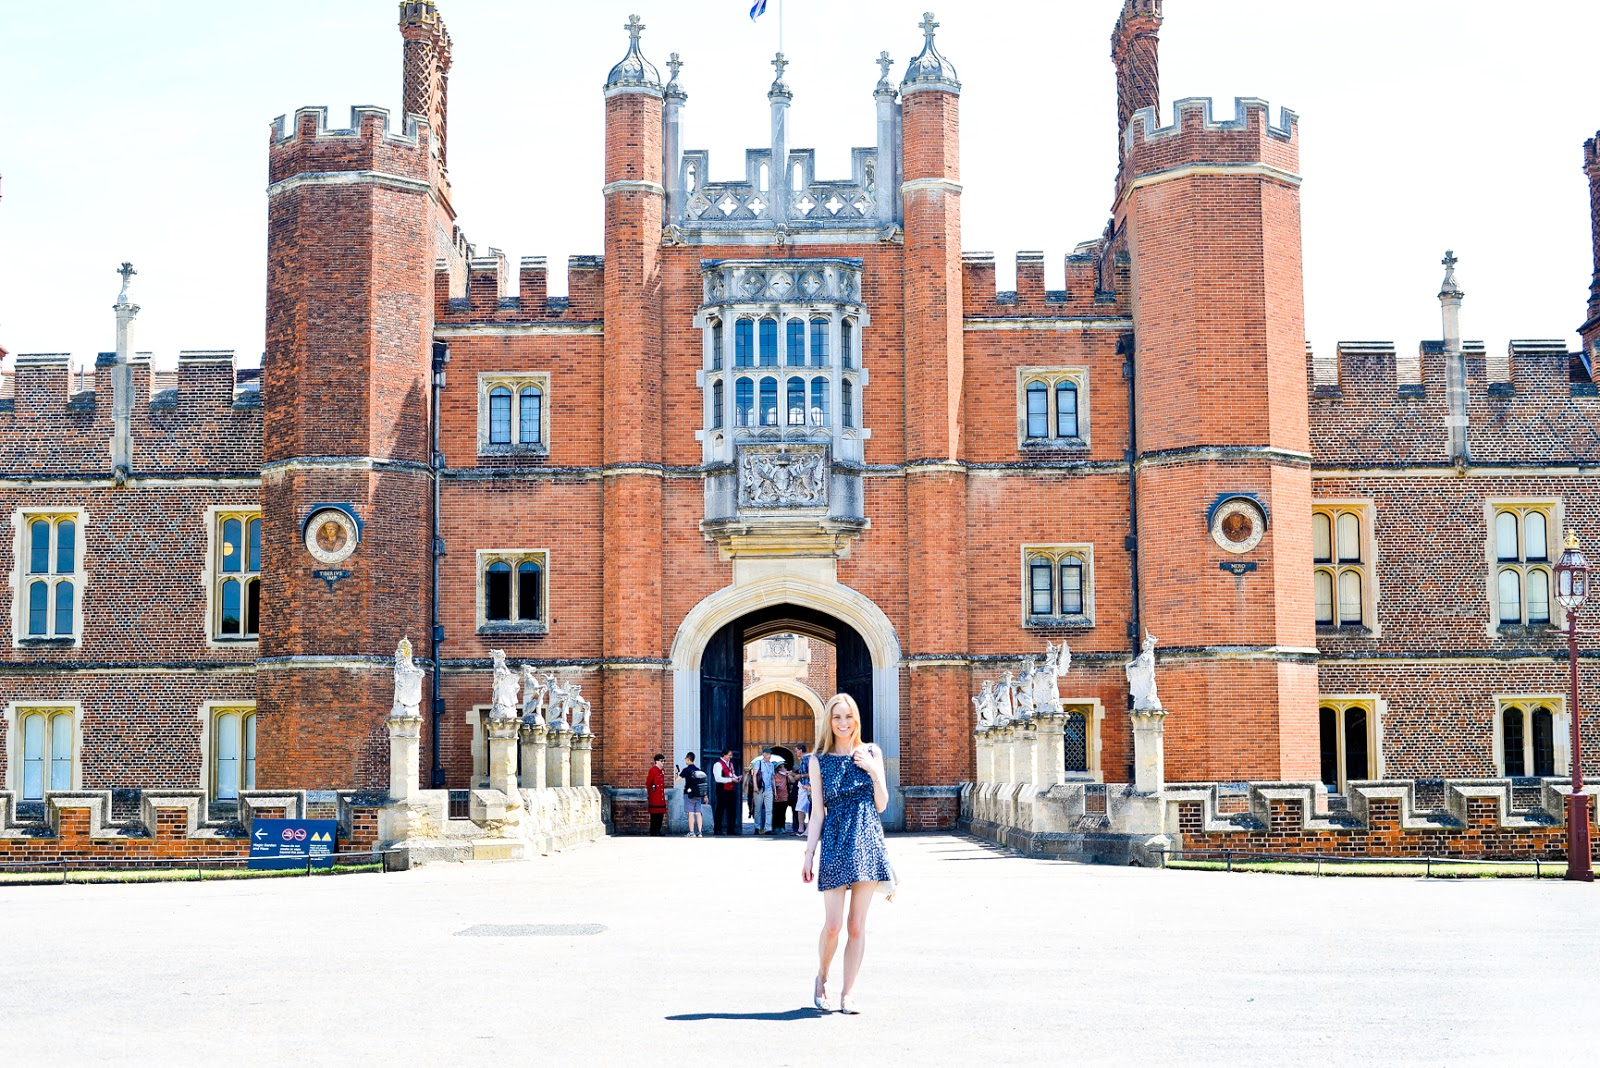 Hampton Court Palace, Hampton Court, King Henry VIII, Henry VIII, Henry Tudor, The Tudors, Tudor Palace